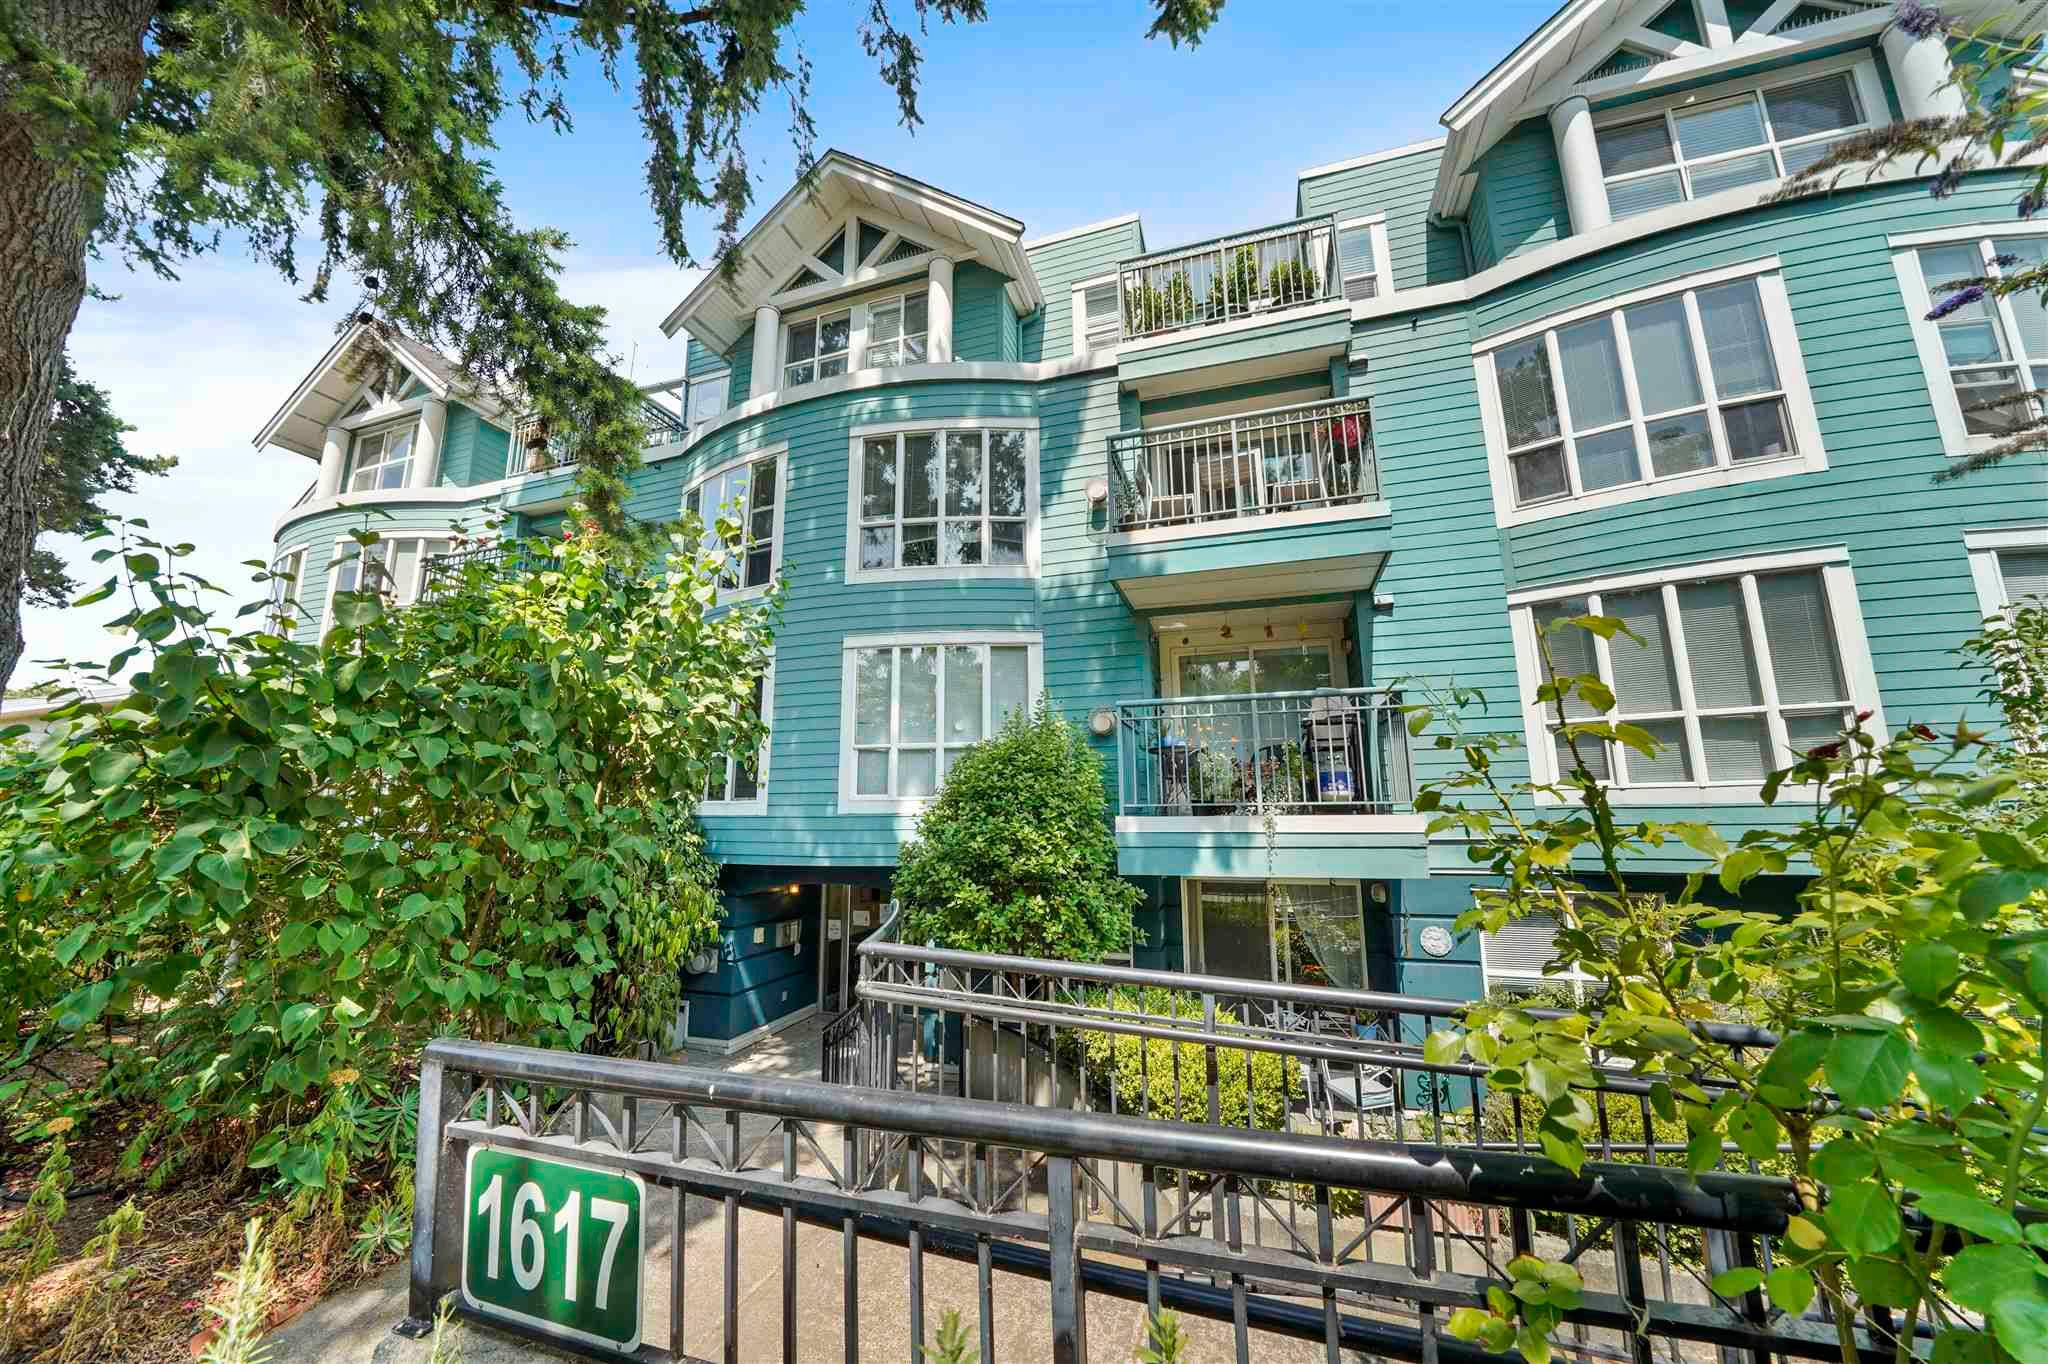 """Main Photo: 204 1617 GRANT Street in Vancouver: Grandview Woodland Condo for sale in """"Evergreen Place"""" (Vancouver East)  : MLS®# R2604892"""